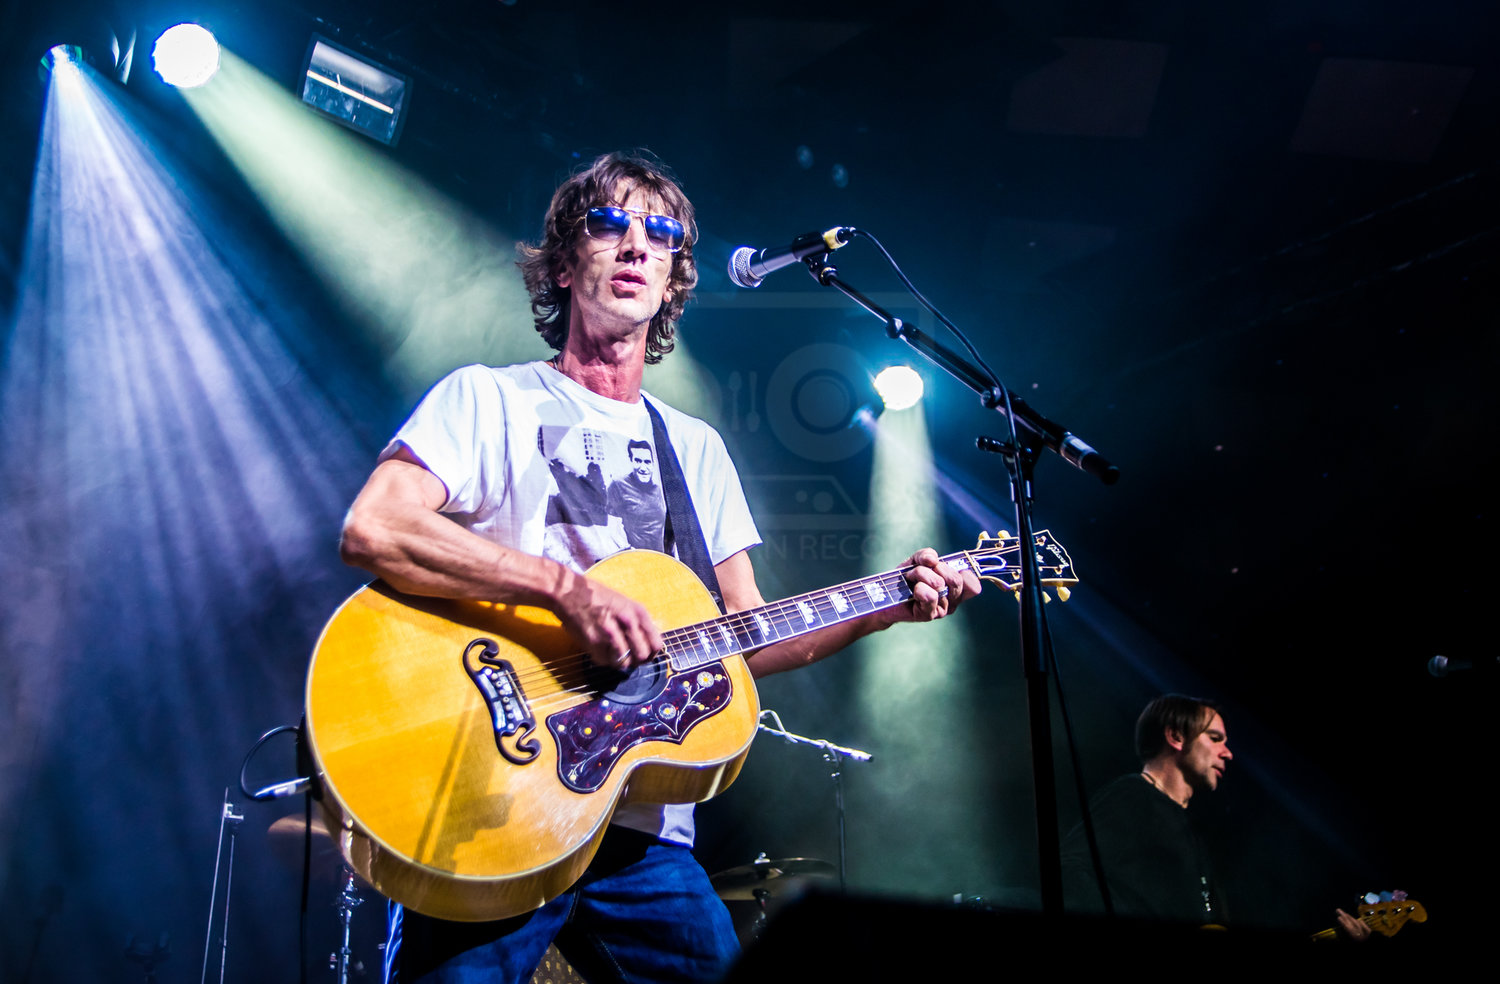 RICHARD ASHCROFT PERFORMING AT GLASGOW'S BARROWLAND BALLROOM - 26.10.2018  PICTURE BY: STEPHEN WILSON PHOTOGRAPHY